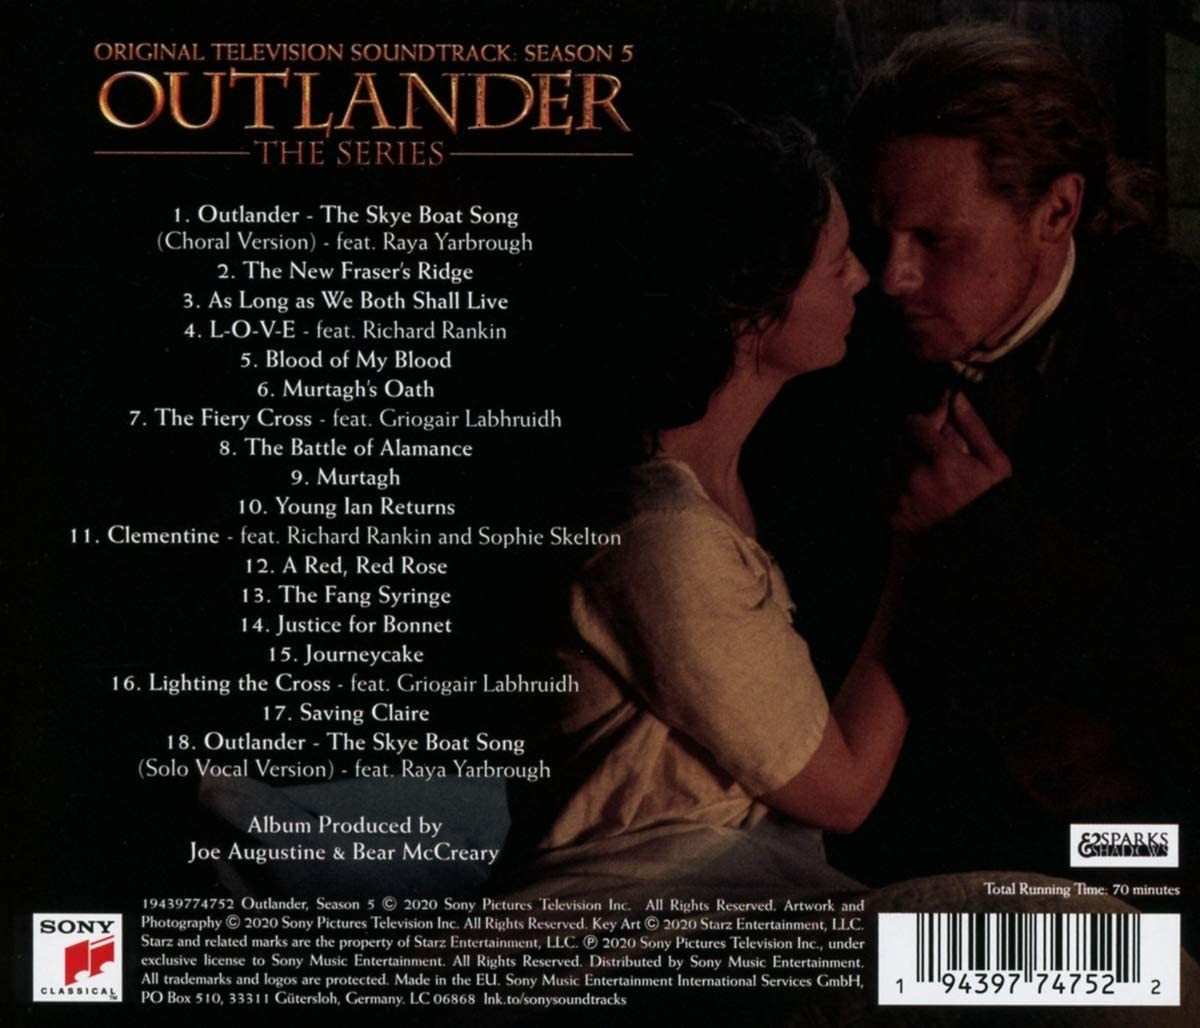 Outlander (Sezon 5) - okładka soundtracku CD (tył)